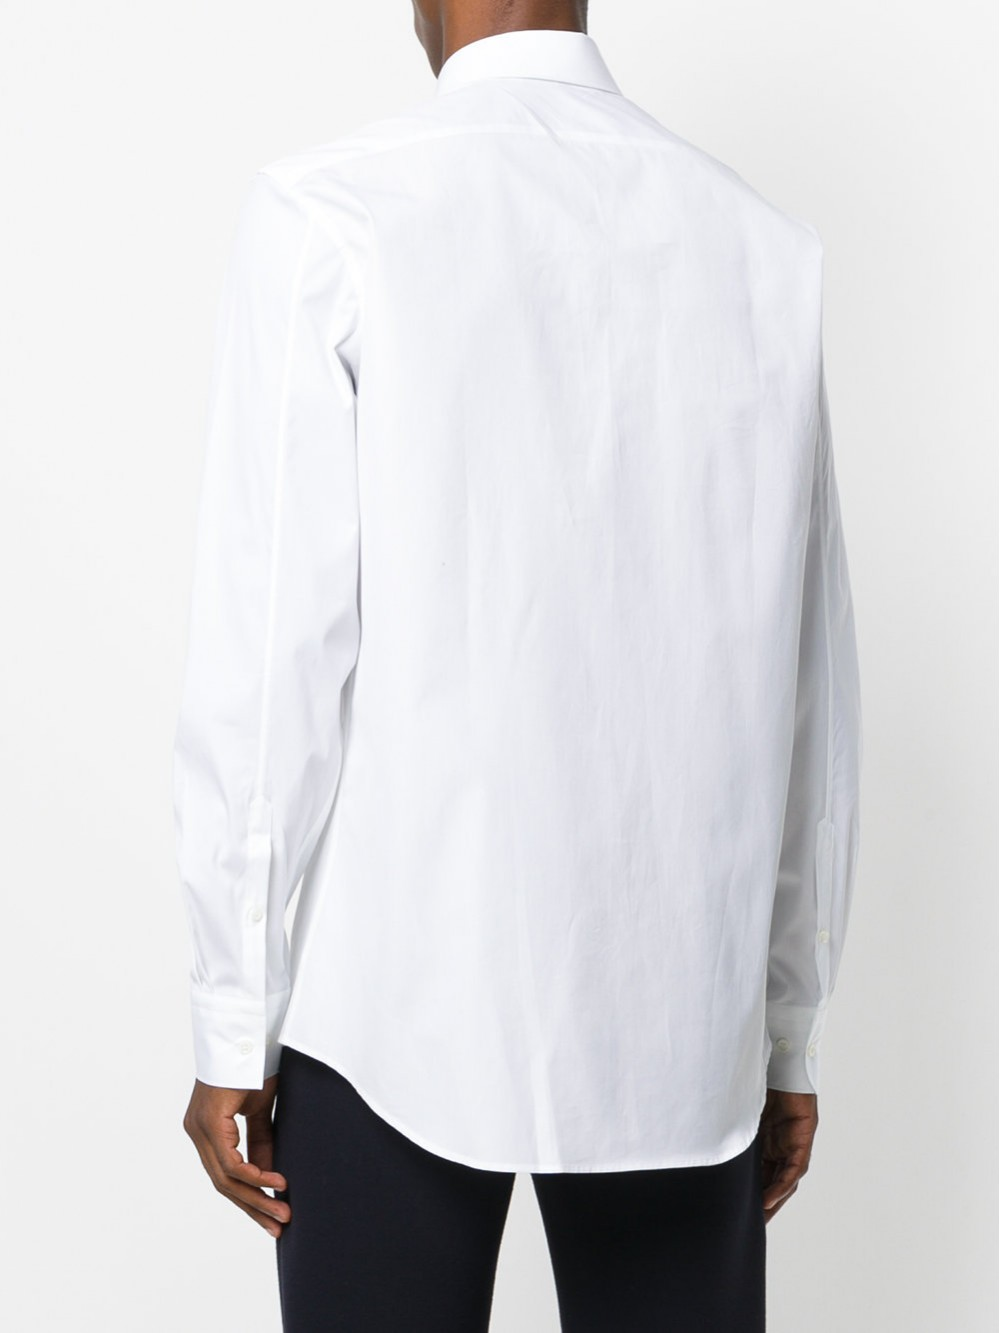 Neil Barrett Graphic Shirt | PBCM663SF030S 526